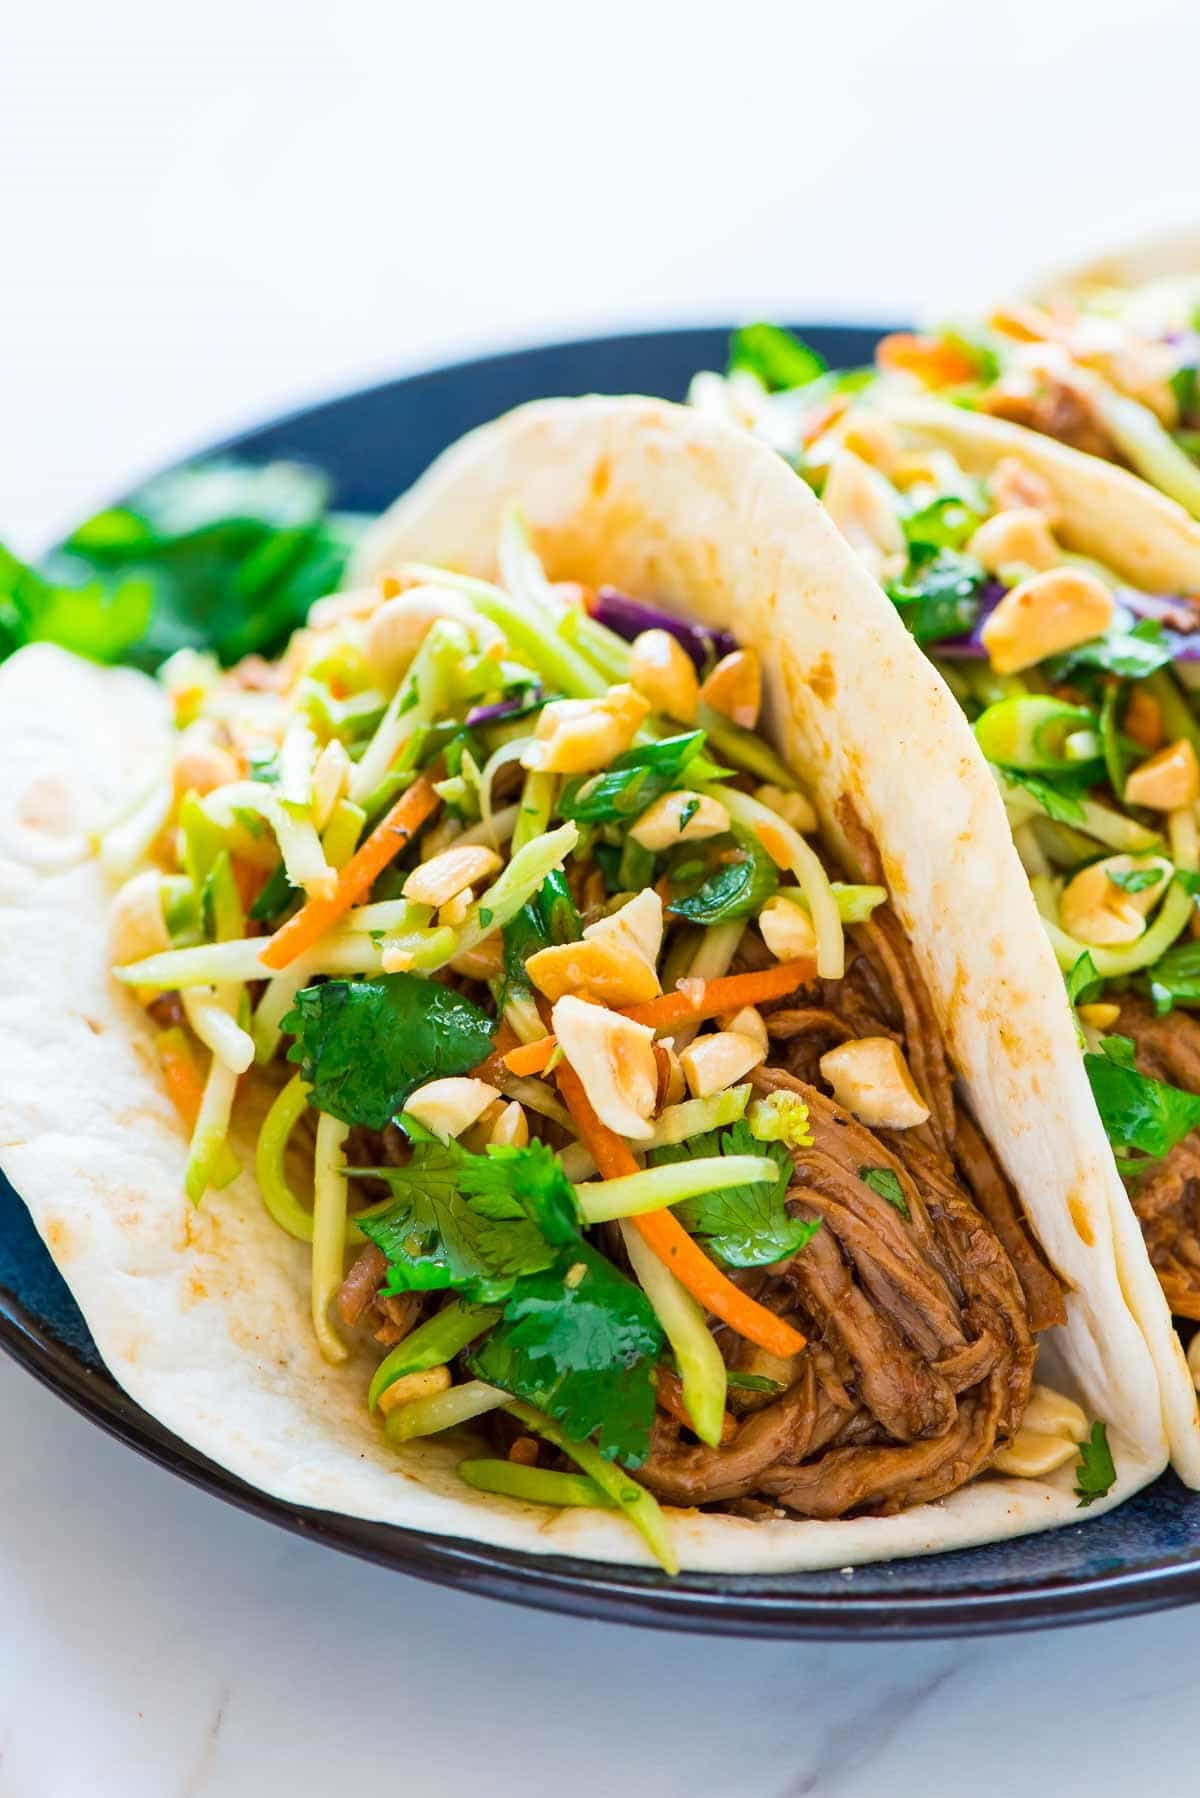 Asian pulled pork tacos topped with broccoli slaw and crunchy peanuts